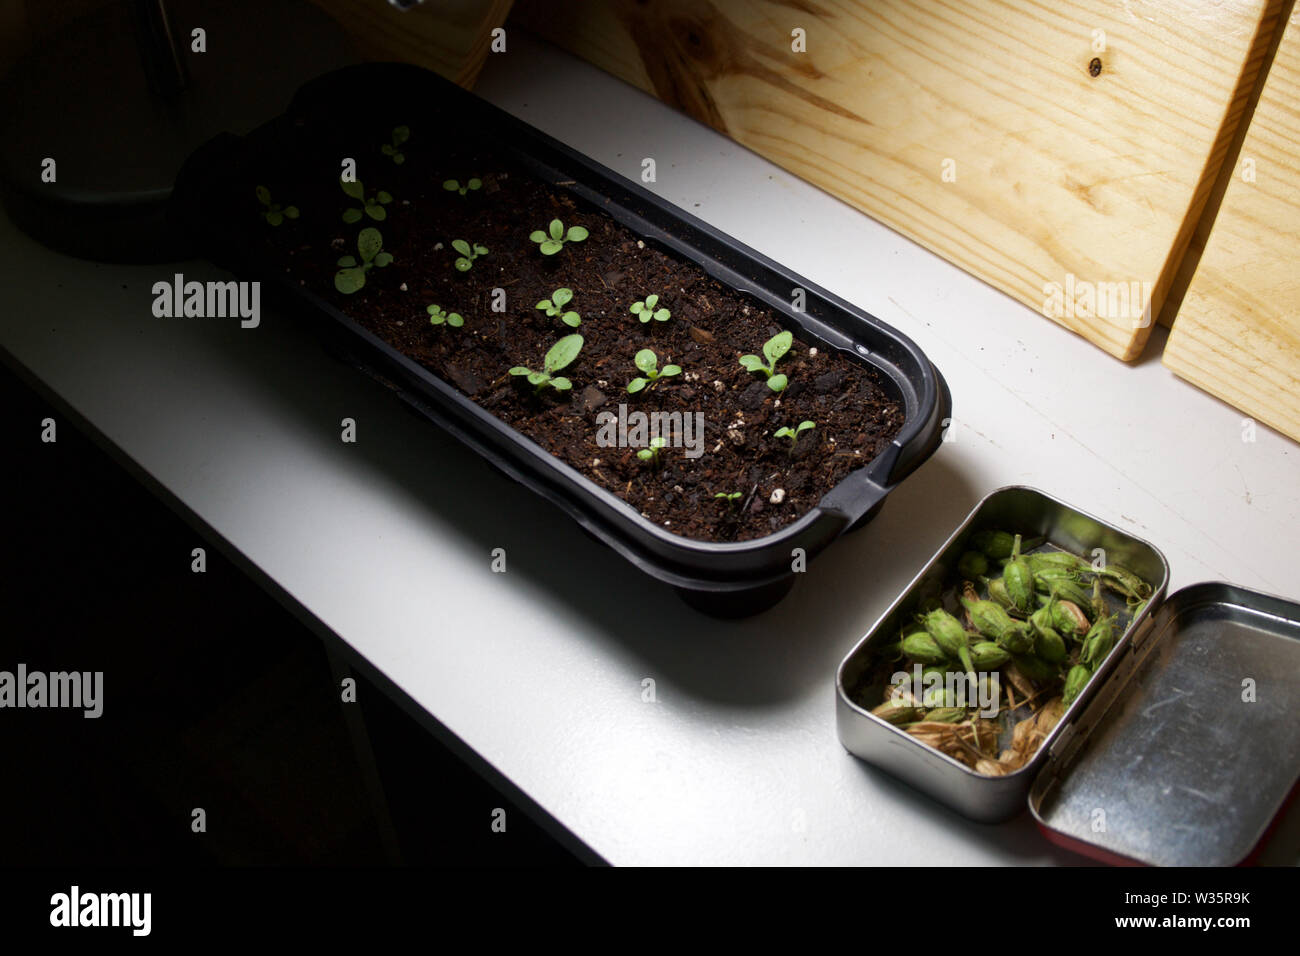 An indoor garden showing seed tray with growing seedlings and fresh seedpods of jasmine tobacco, nicotiana alata, in tin. - Stock Image